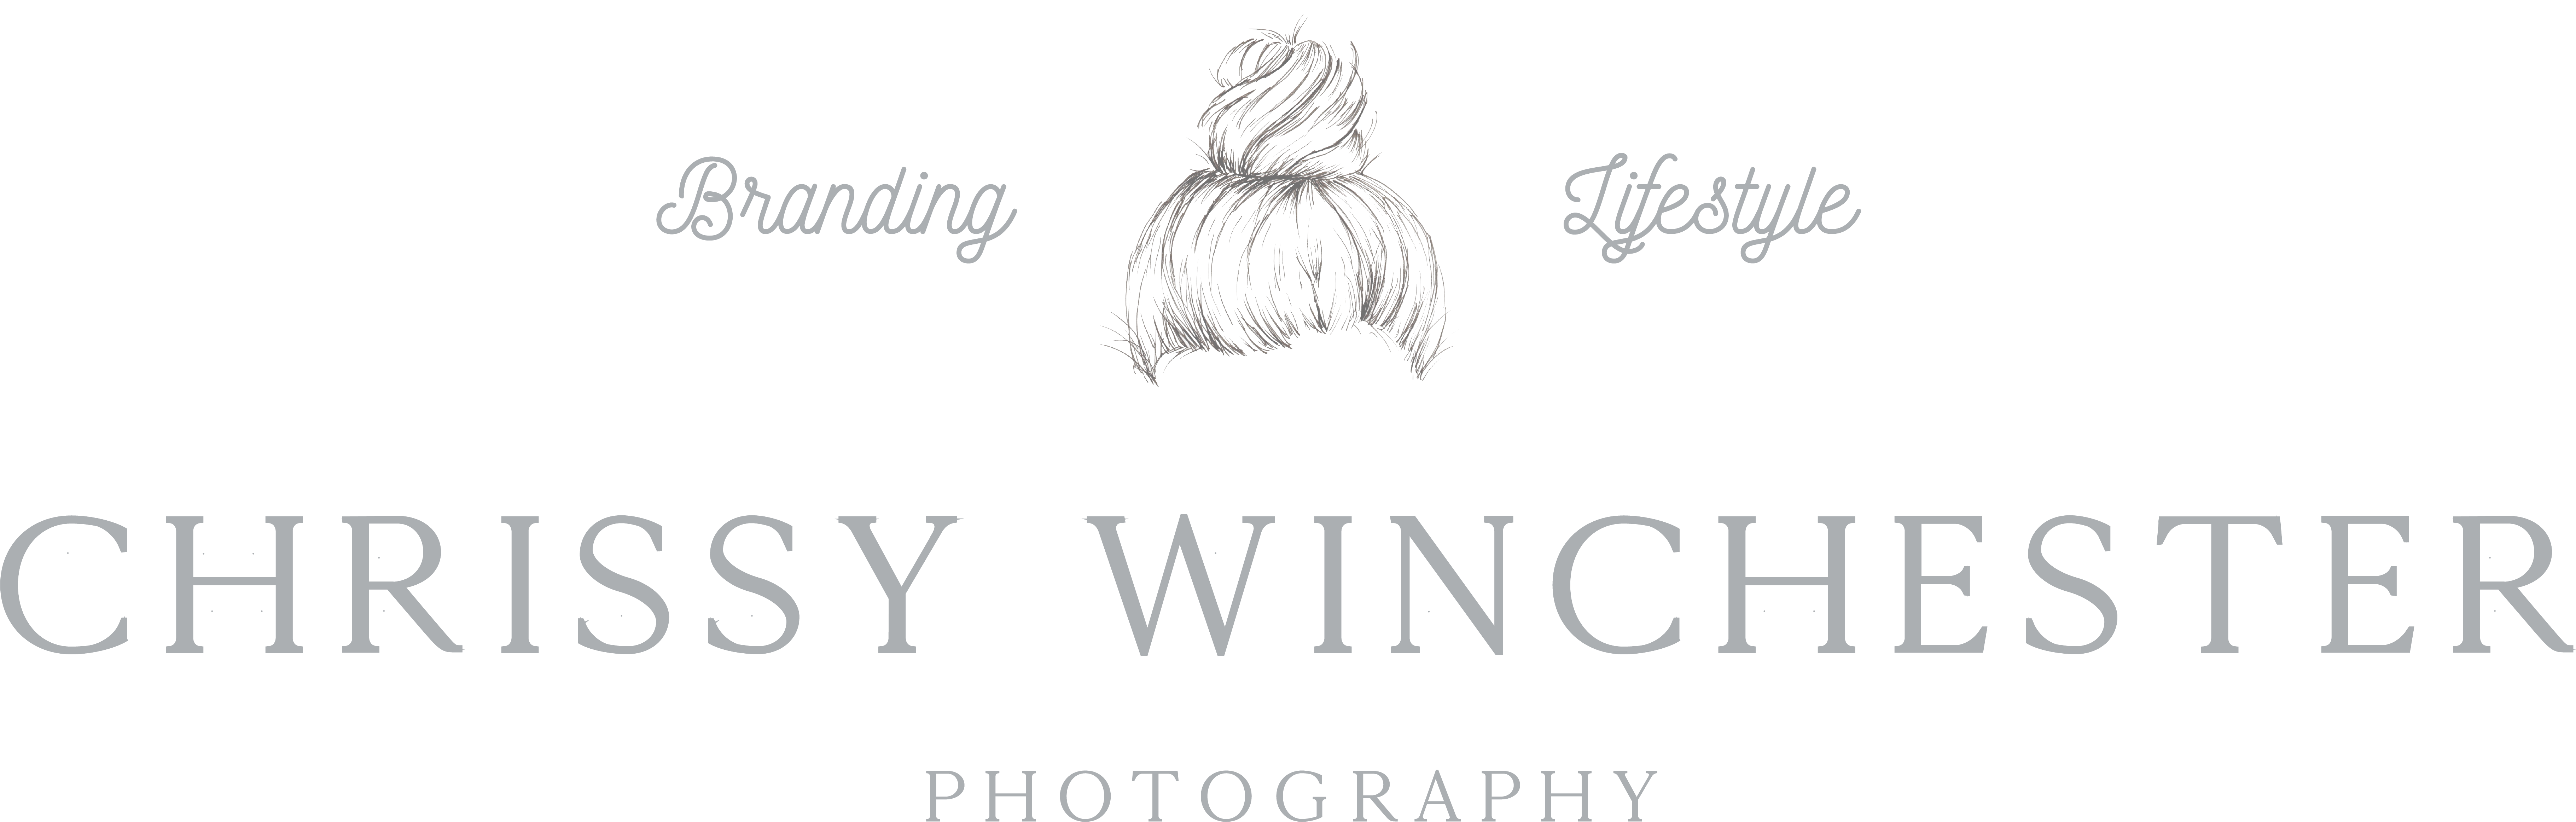 Chrissy Winchester Photography